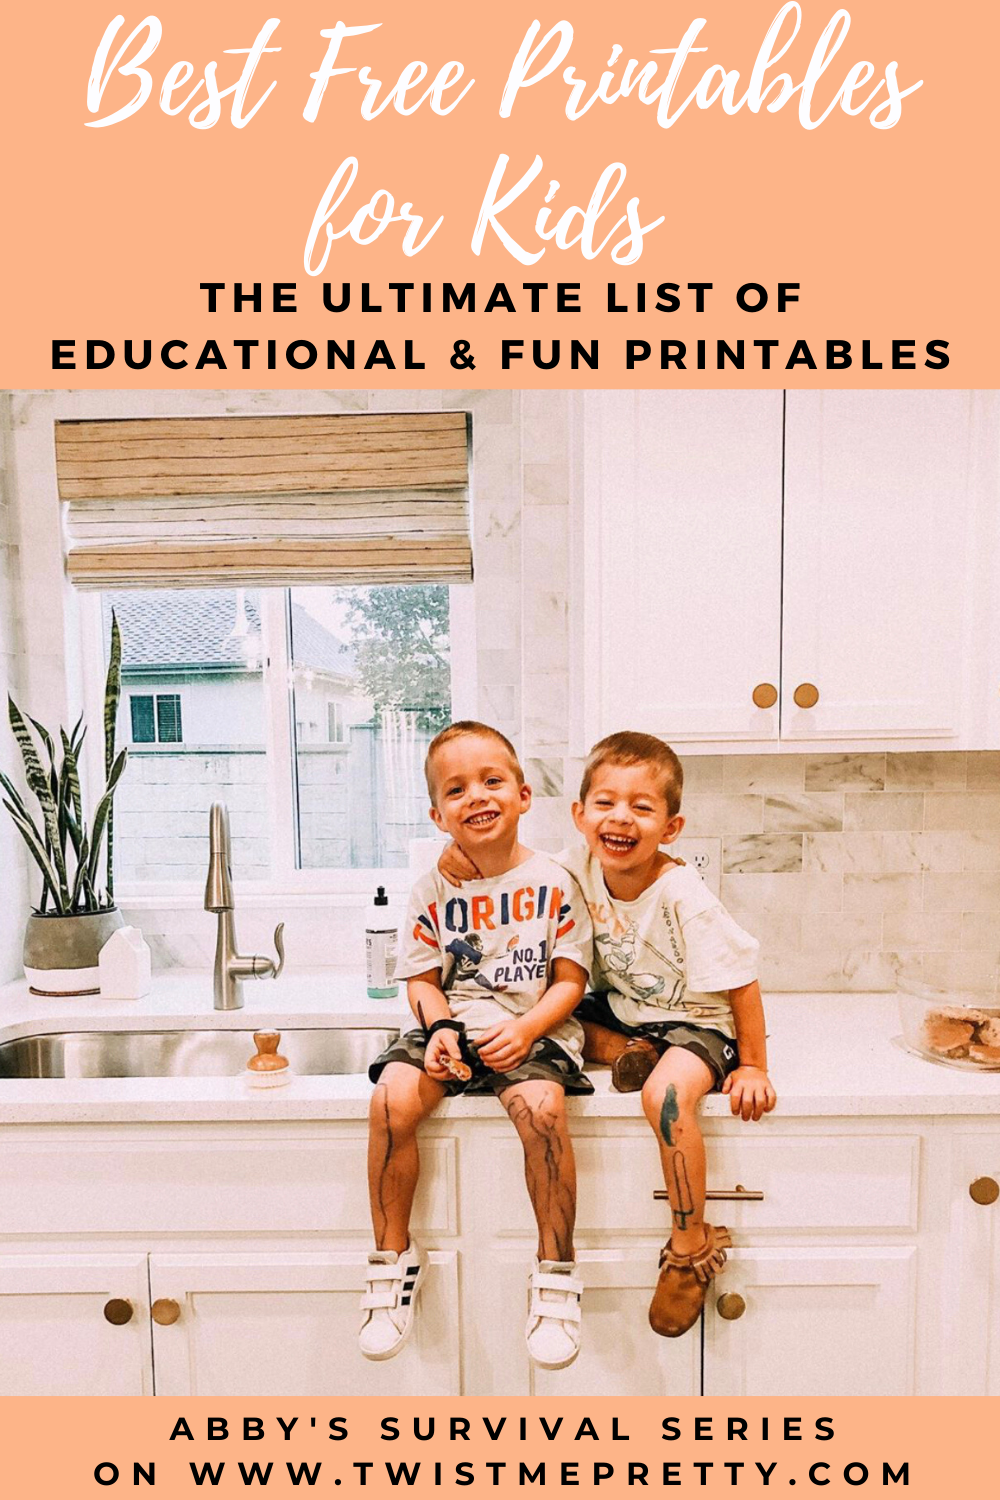 Best Free Printables for Kids- The ultimate list of educational and fun printables from Abby's Survival Series. www.TwistMePretty.com